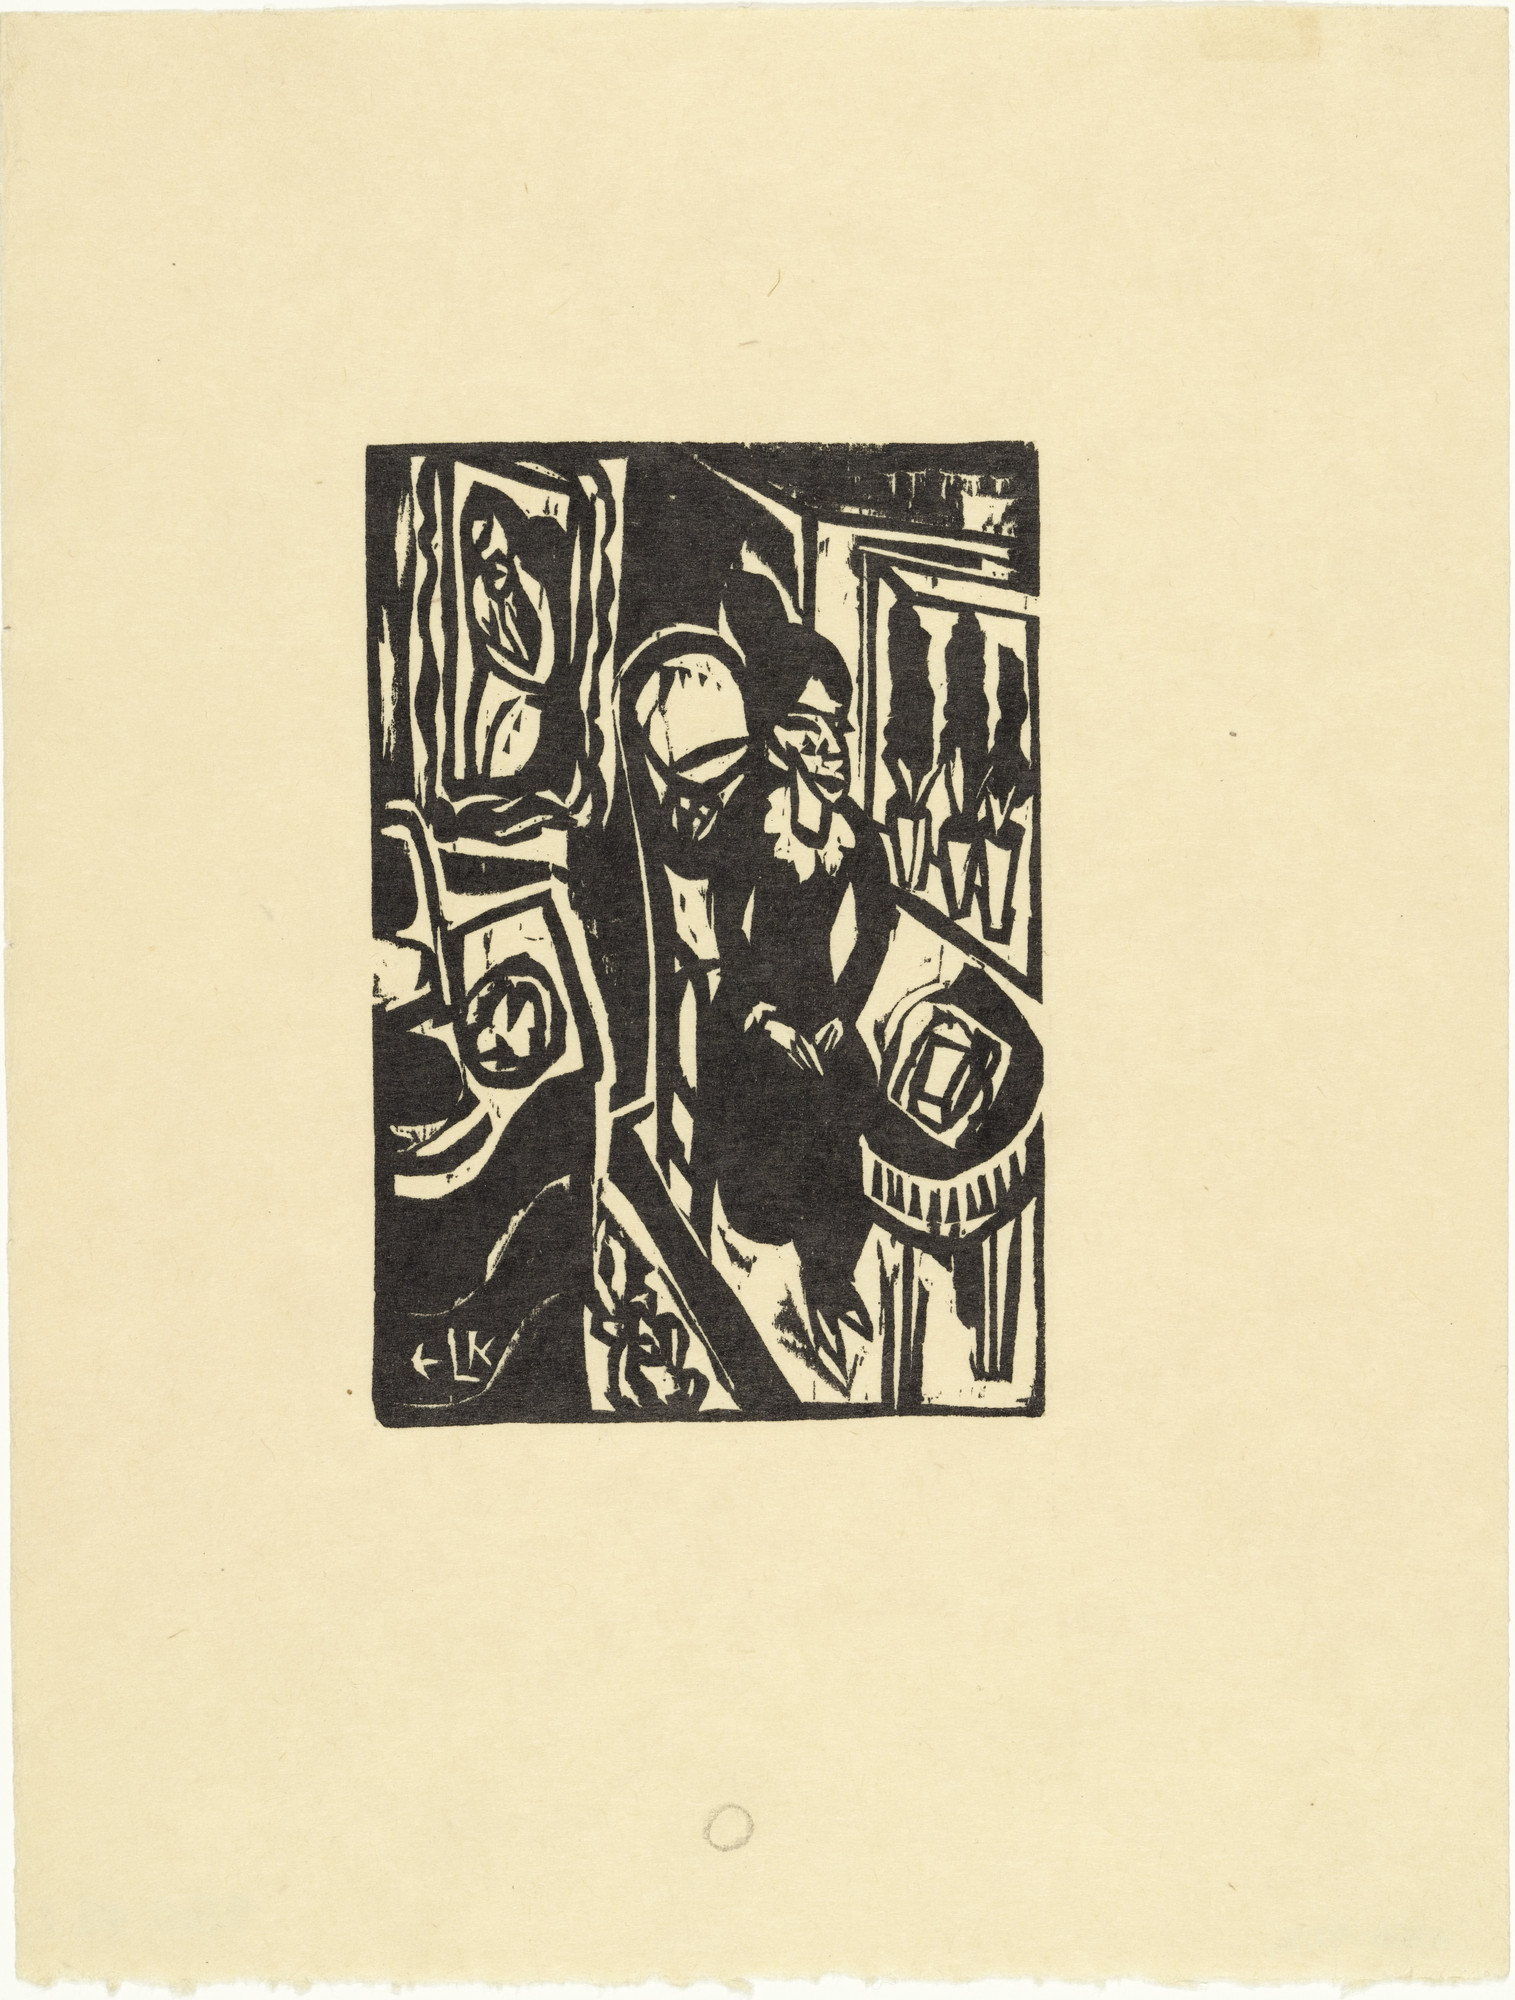 Ernst Ludwig Kirchner. Canoness at the Sewing Table (Stiftsfräulein am Nähtisch) from the illustrated book Das Stiftsfräulein und der Tod (The Canoness and Death). (1912, published 1913)